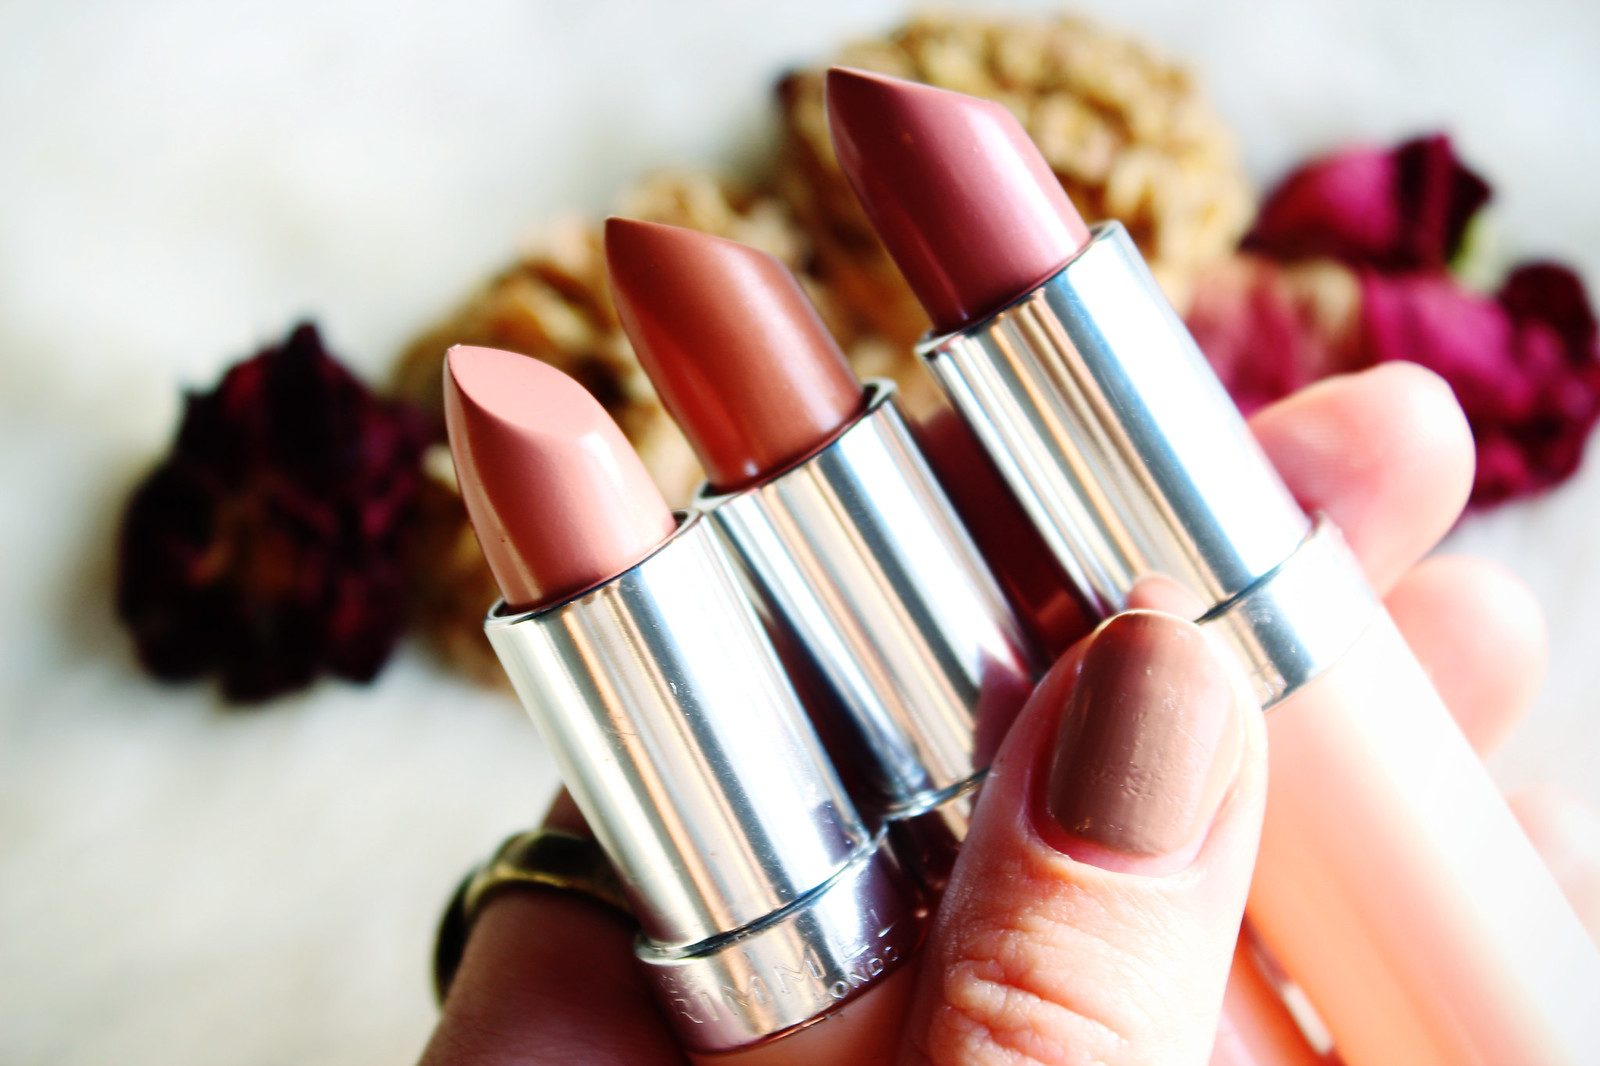 Rimmel Long Lasting Finish Kate Nude Lipstick collection review